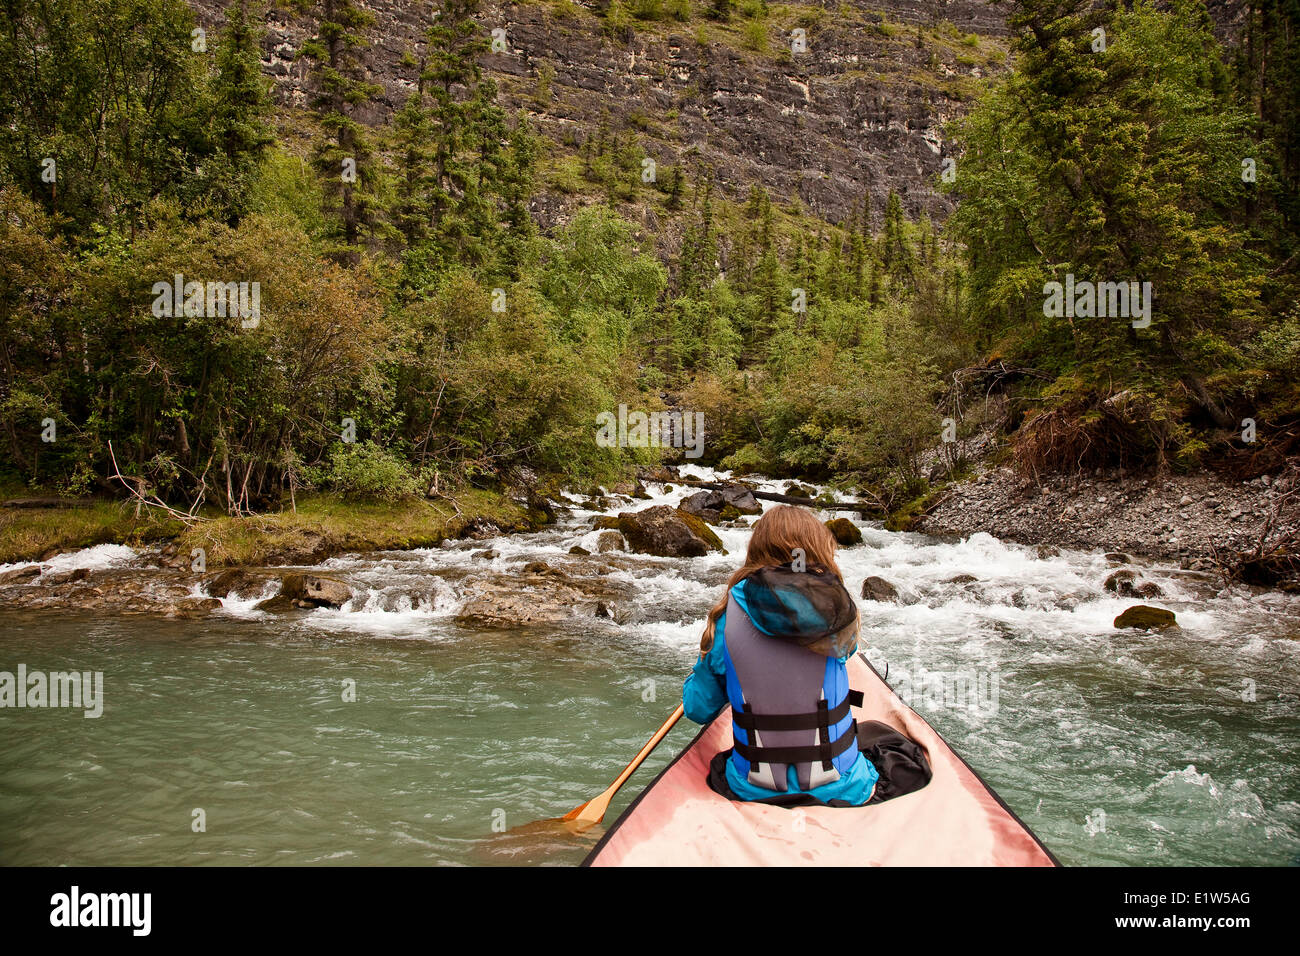 Young girl in canoe approaches White Spray Spring on Nahanni River, Nahanni National Park Preserve, NWT, Canada. - Stock Image